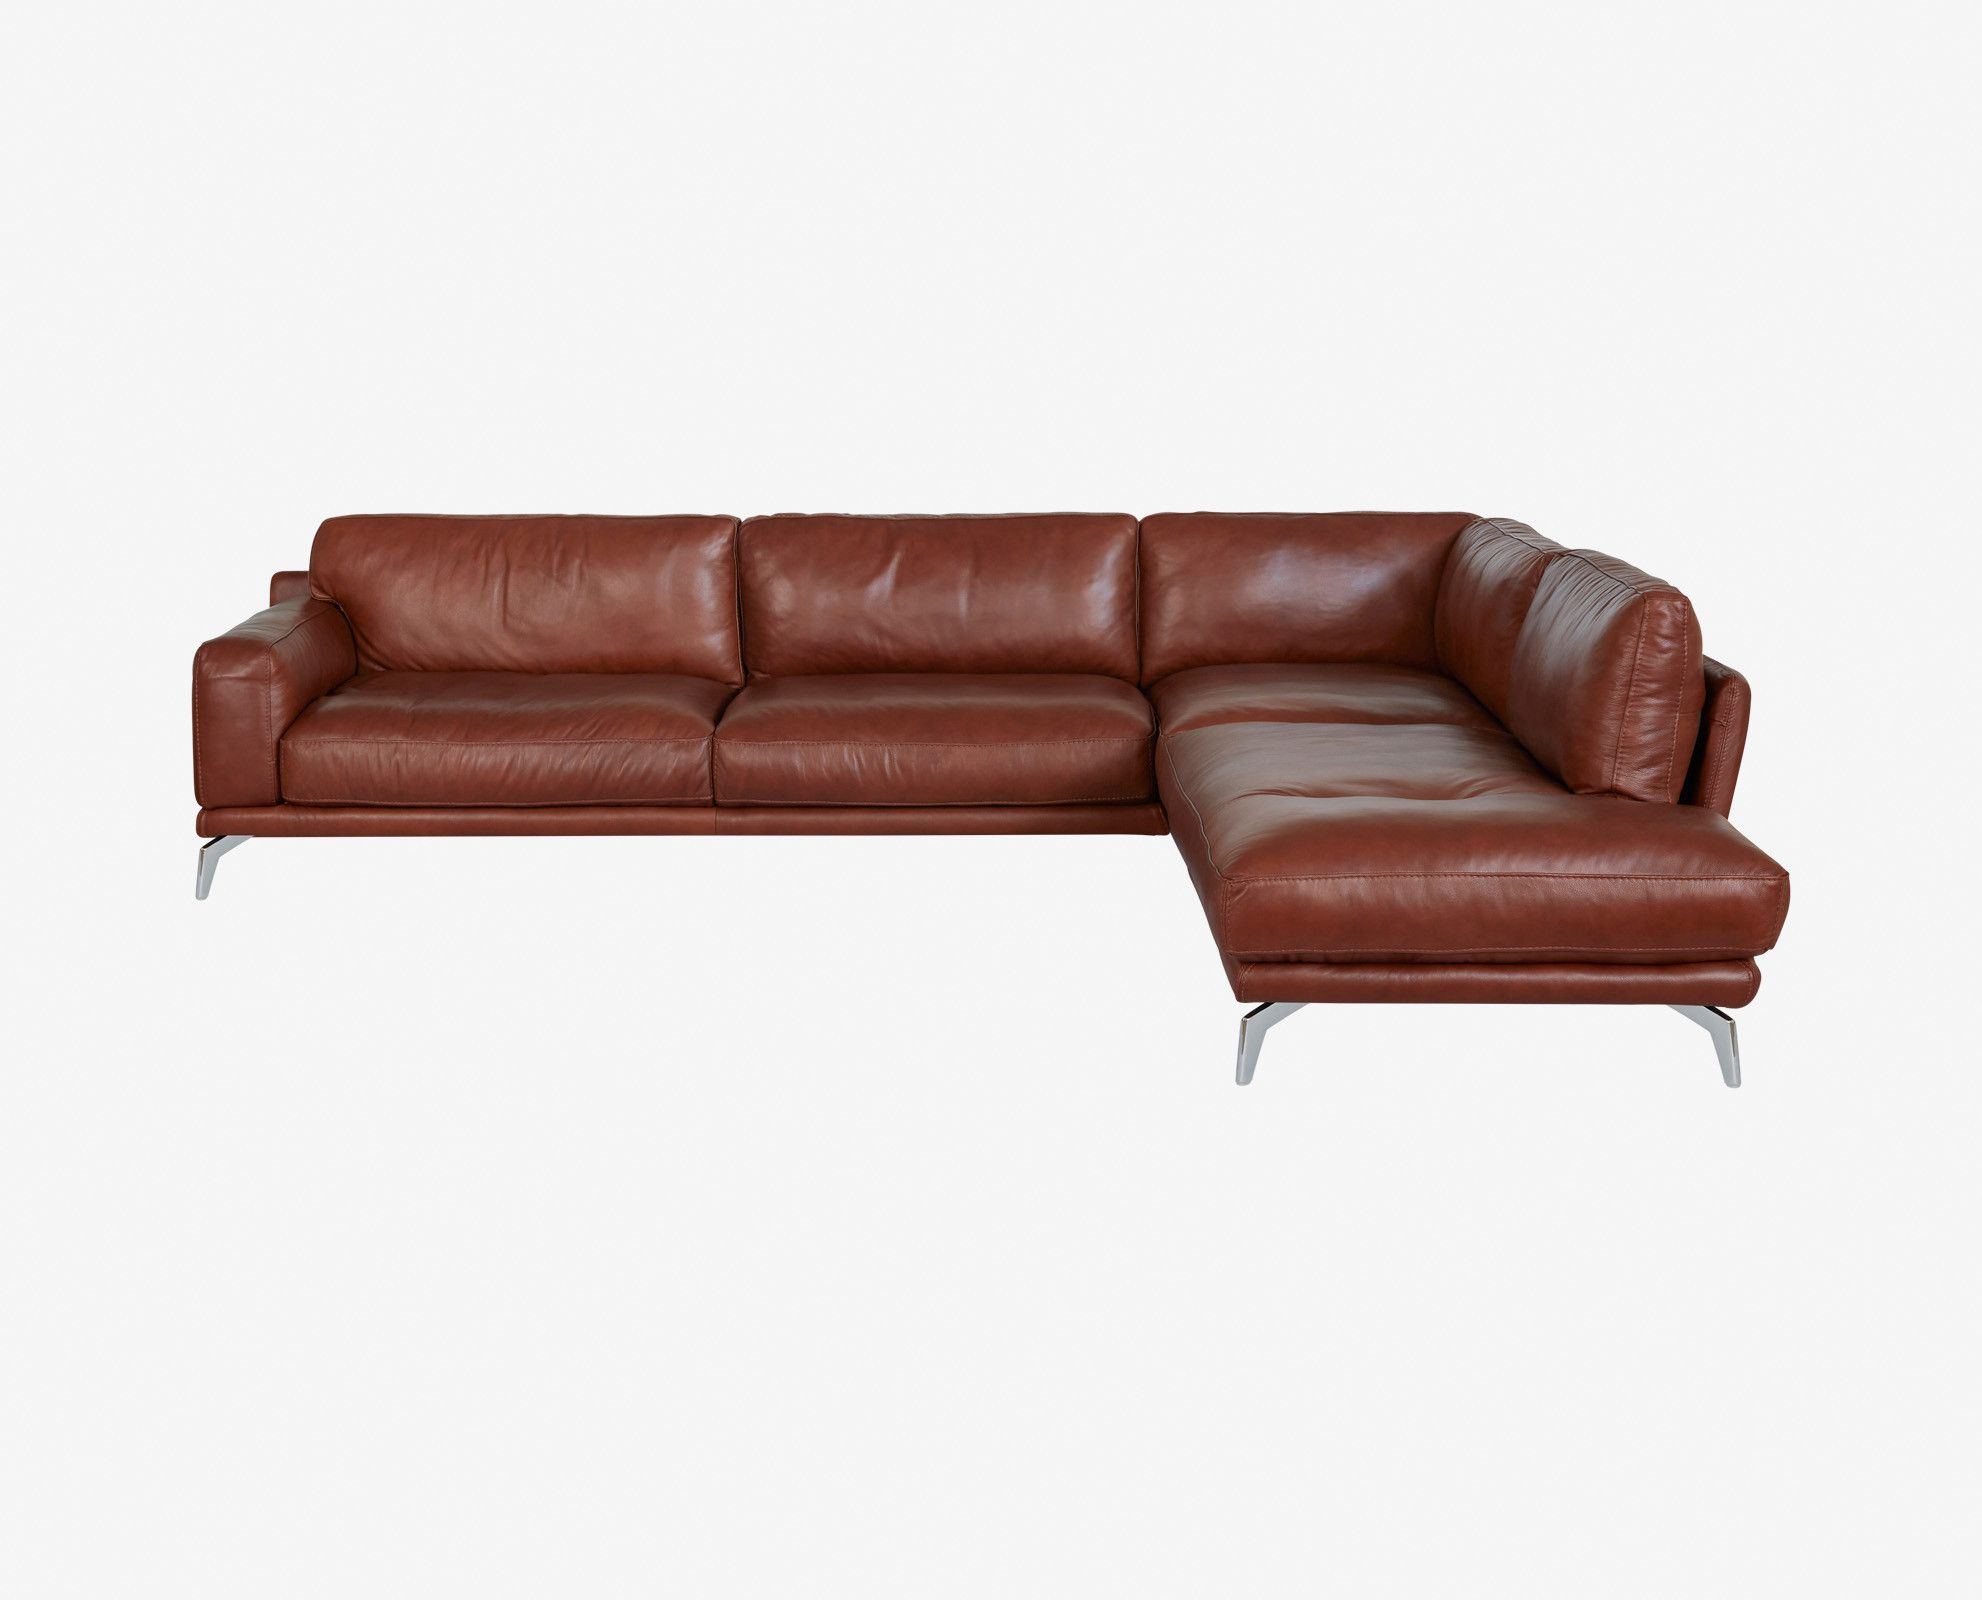 Peruna leather right sectional in 2019 living room finds - Unique living room furniture ...